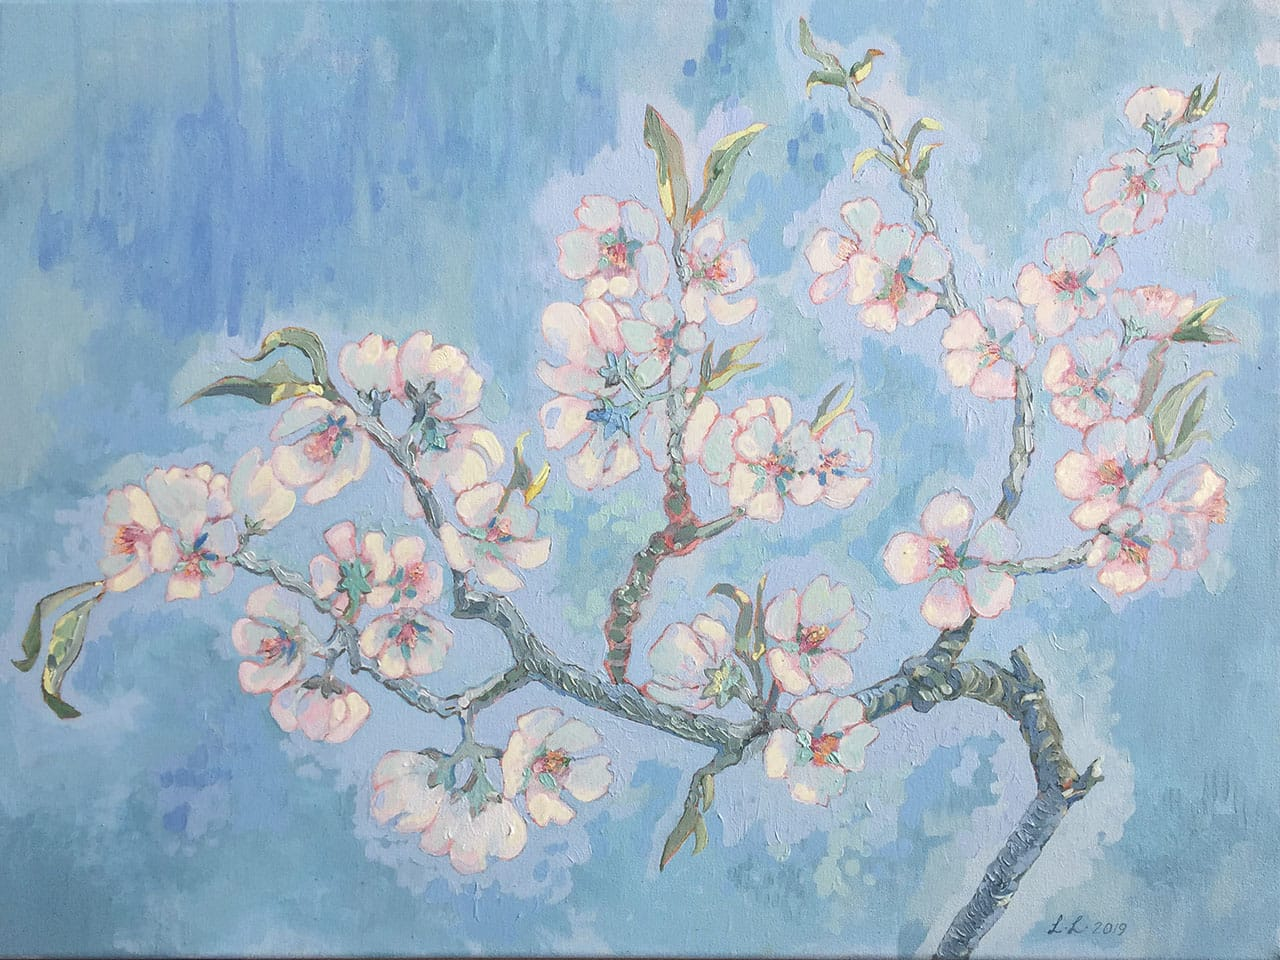 Almond Blossoms, oil on canvas, 18x24inches